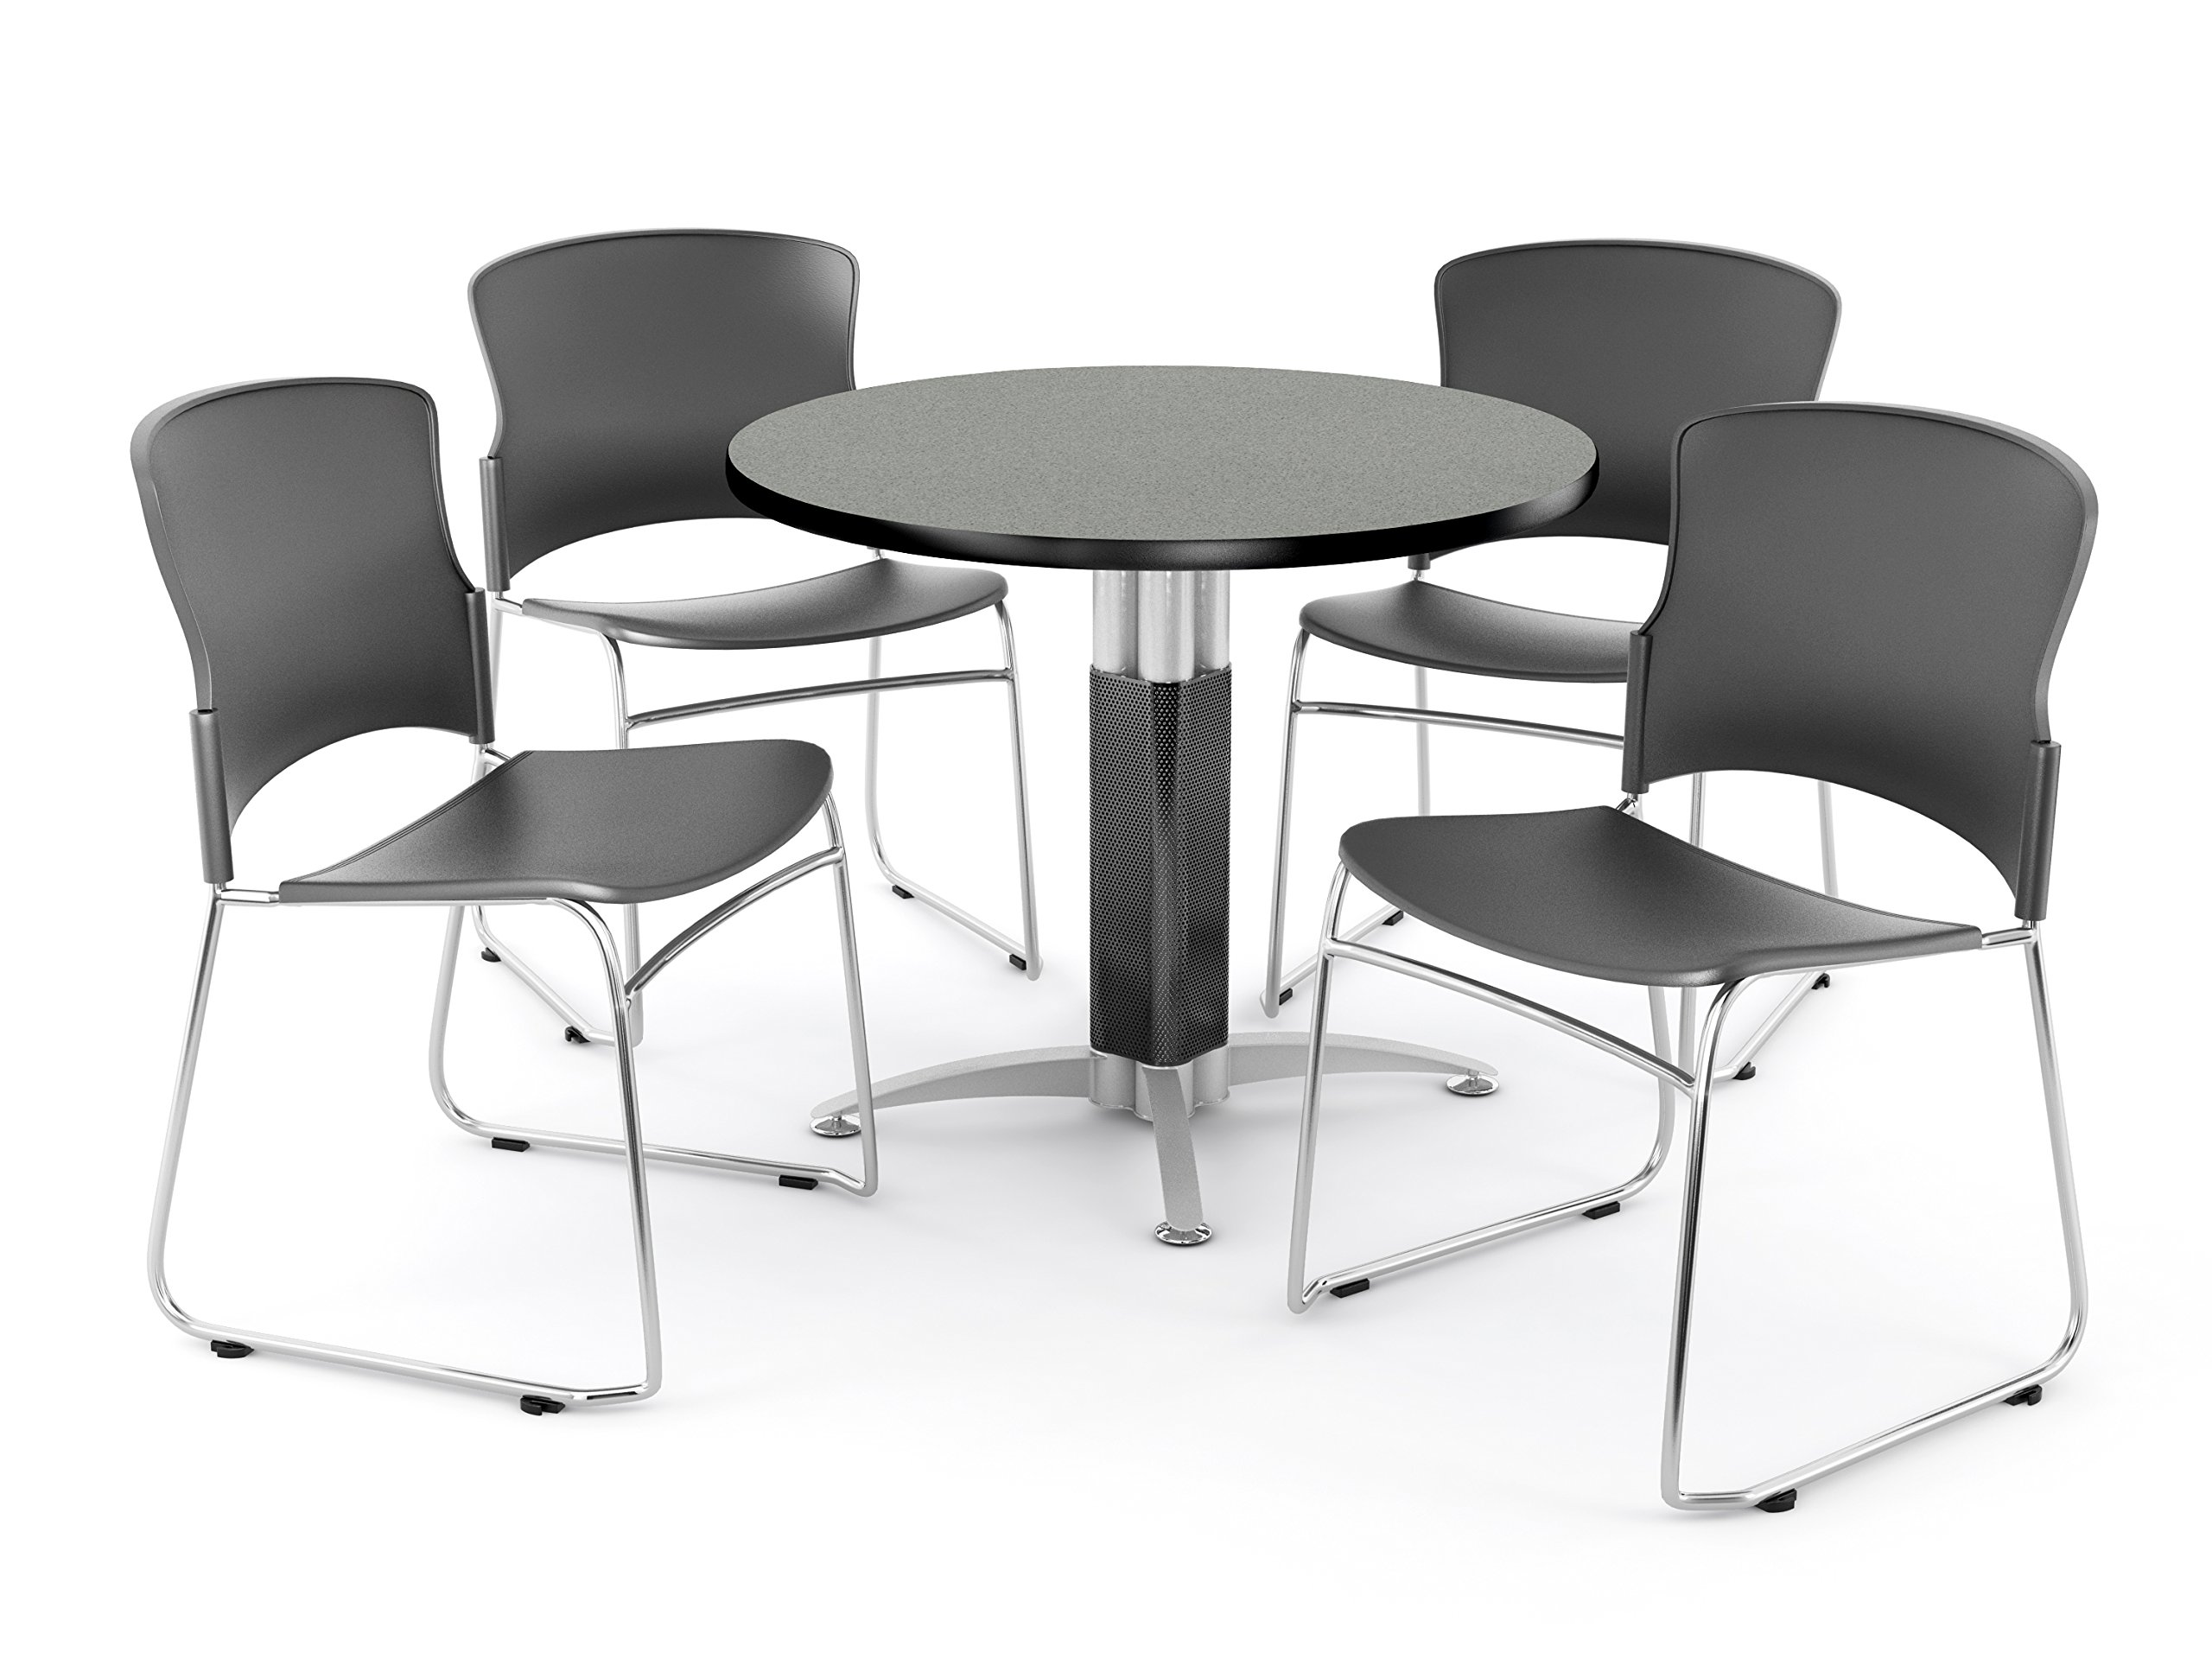 OFM Core Collection Breakroom Set, 42'' Round Metal Mesh Base Multi-Purpose Table in Gray Nebula, 4 Multi-use Plastic Stack Chairs in Gray (PKG-BRK-029-0005) by OFM